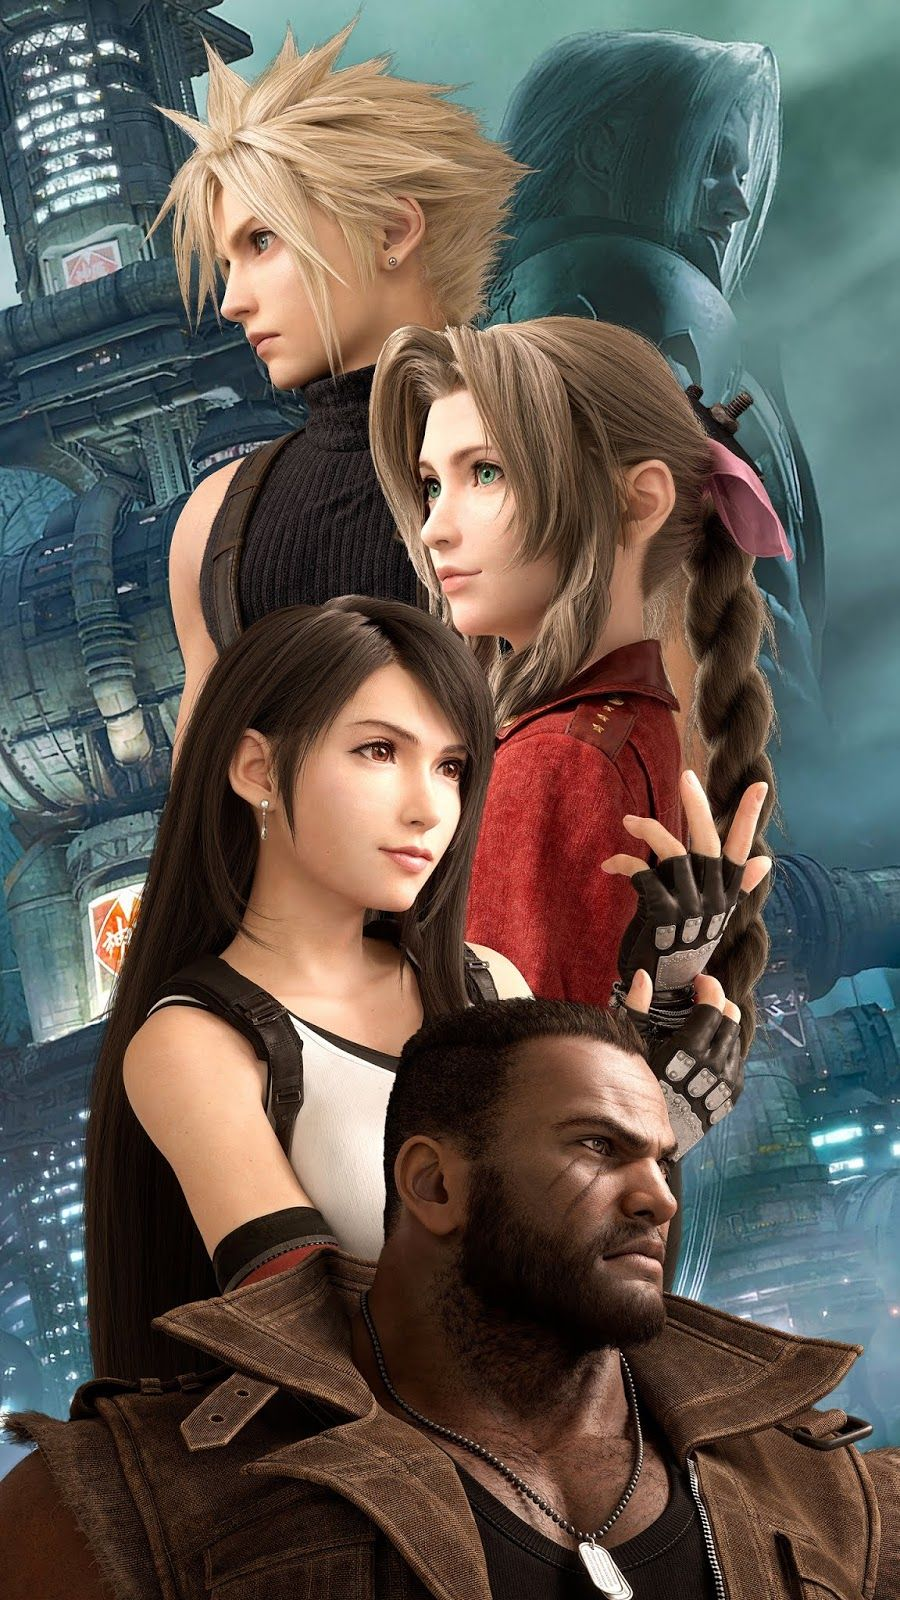 Final Fantasy 7 Remake Wallpaper Iphone Android Background Followme Final Fantasy Girls Final Fantasy Cloud Final Fantasy Vii Cloud